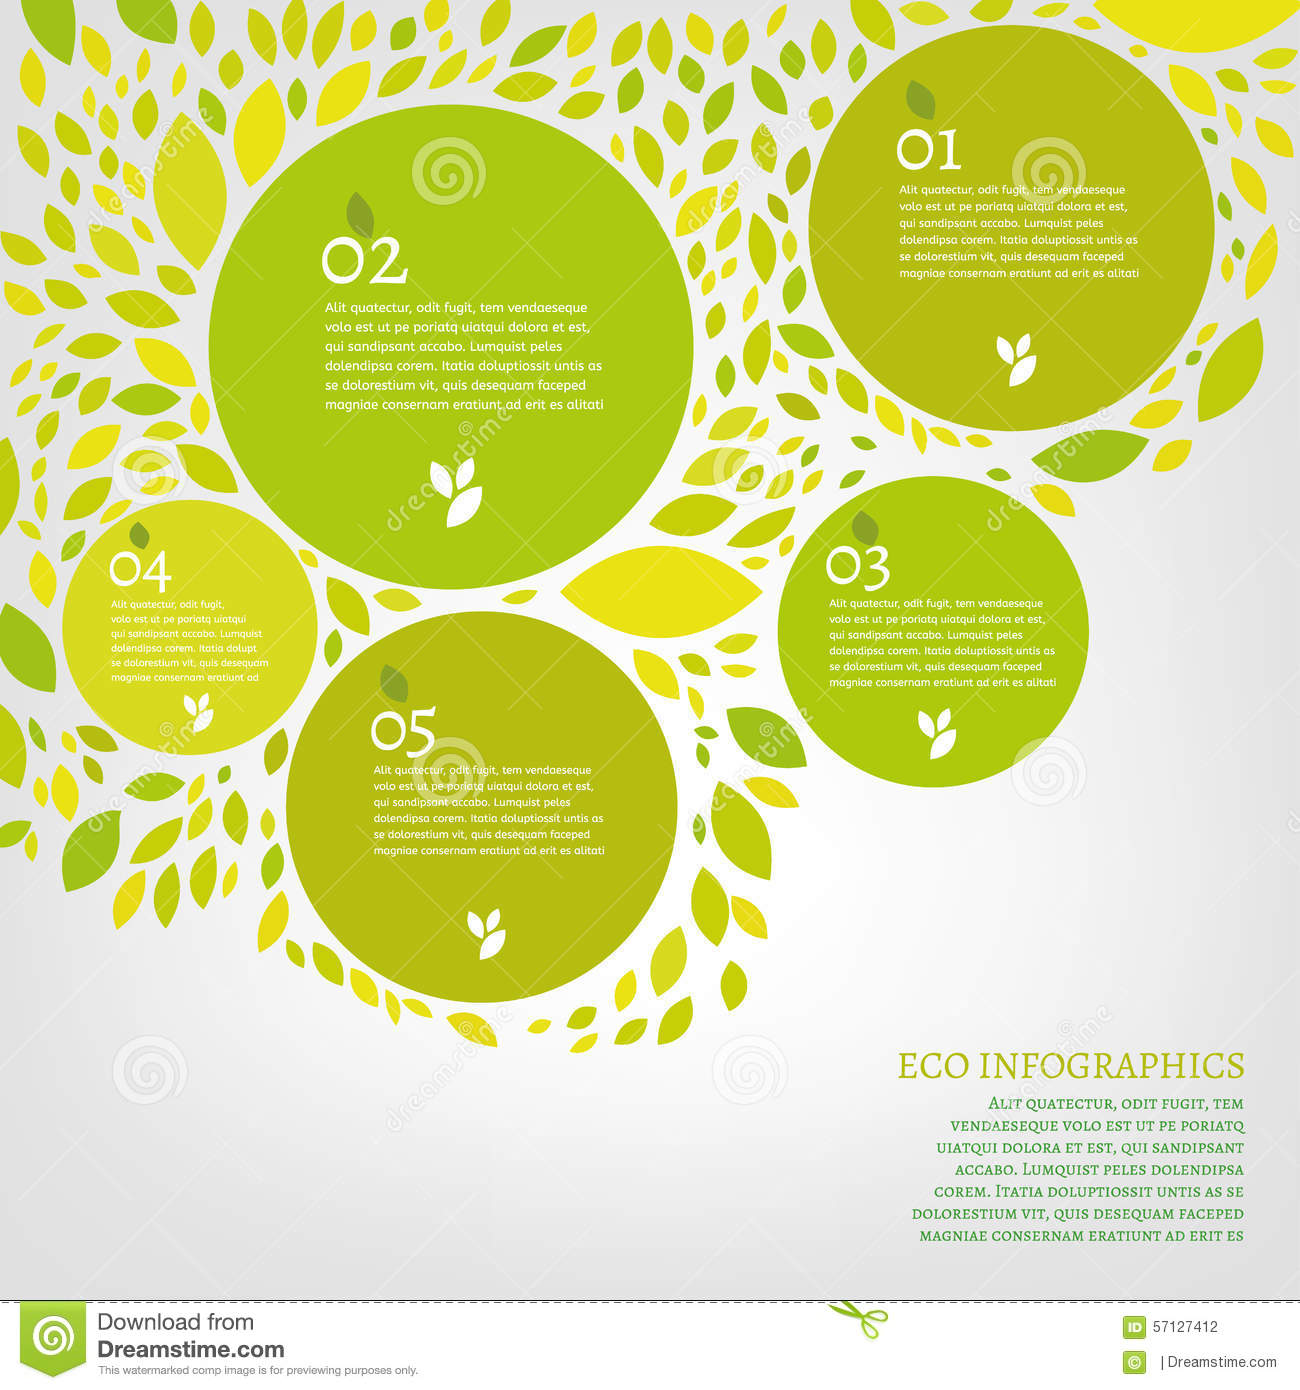 biology ecology design Essays - largest database of quality sample essays and research papers on biology sba sample.